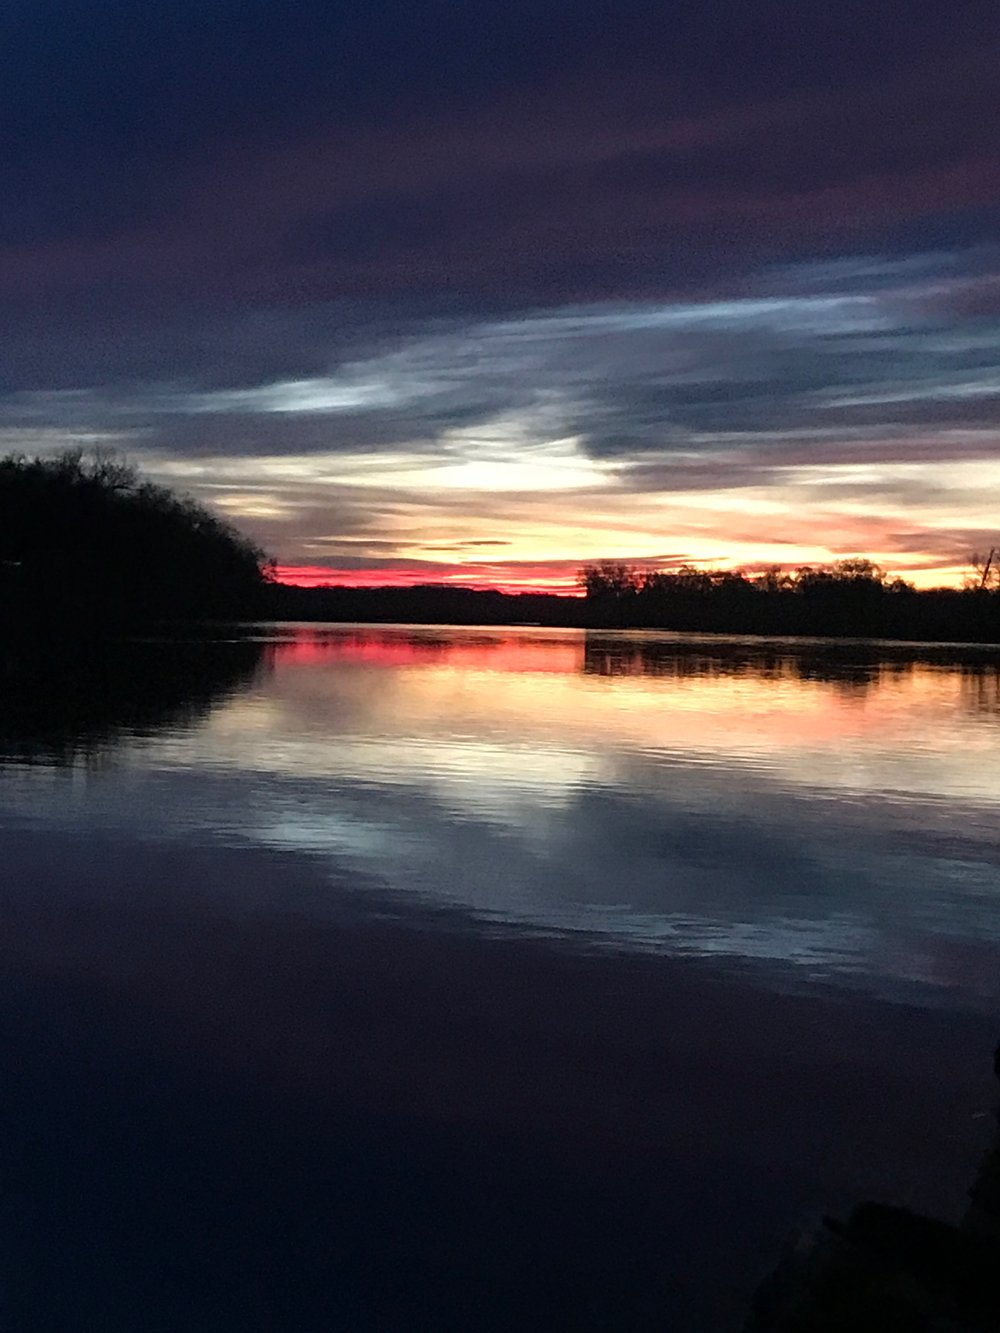 A typical sunrise photo this winter on the Sacramento River. Photo taken by Mike Rasmussen of Mike's Guide Service on December 28, 2017.